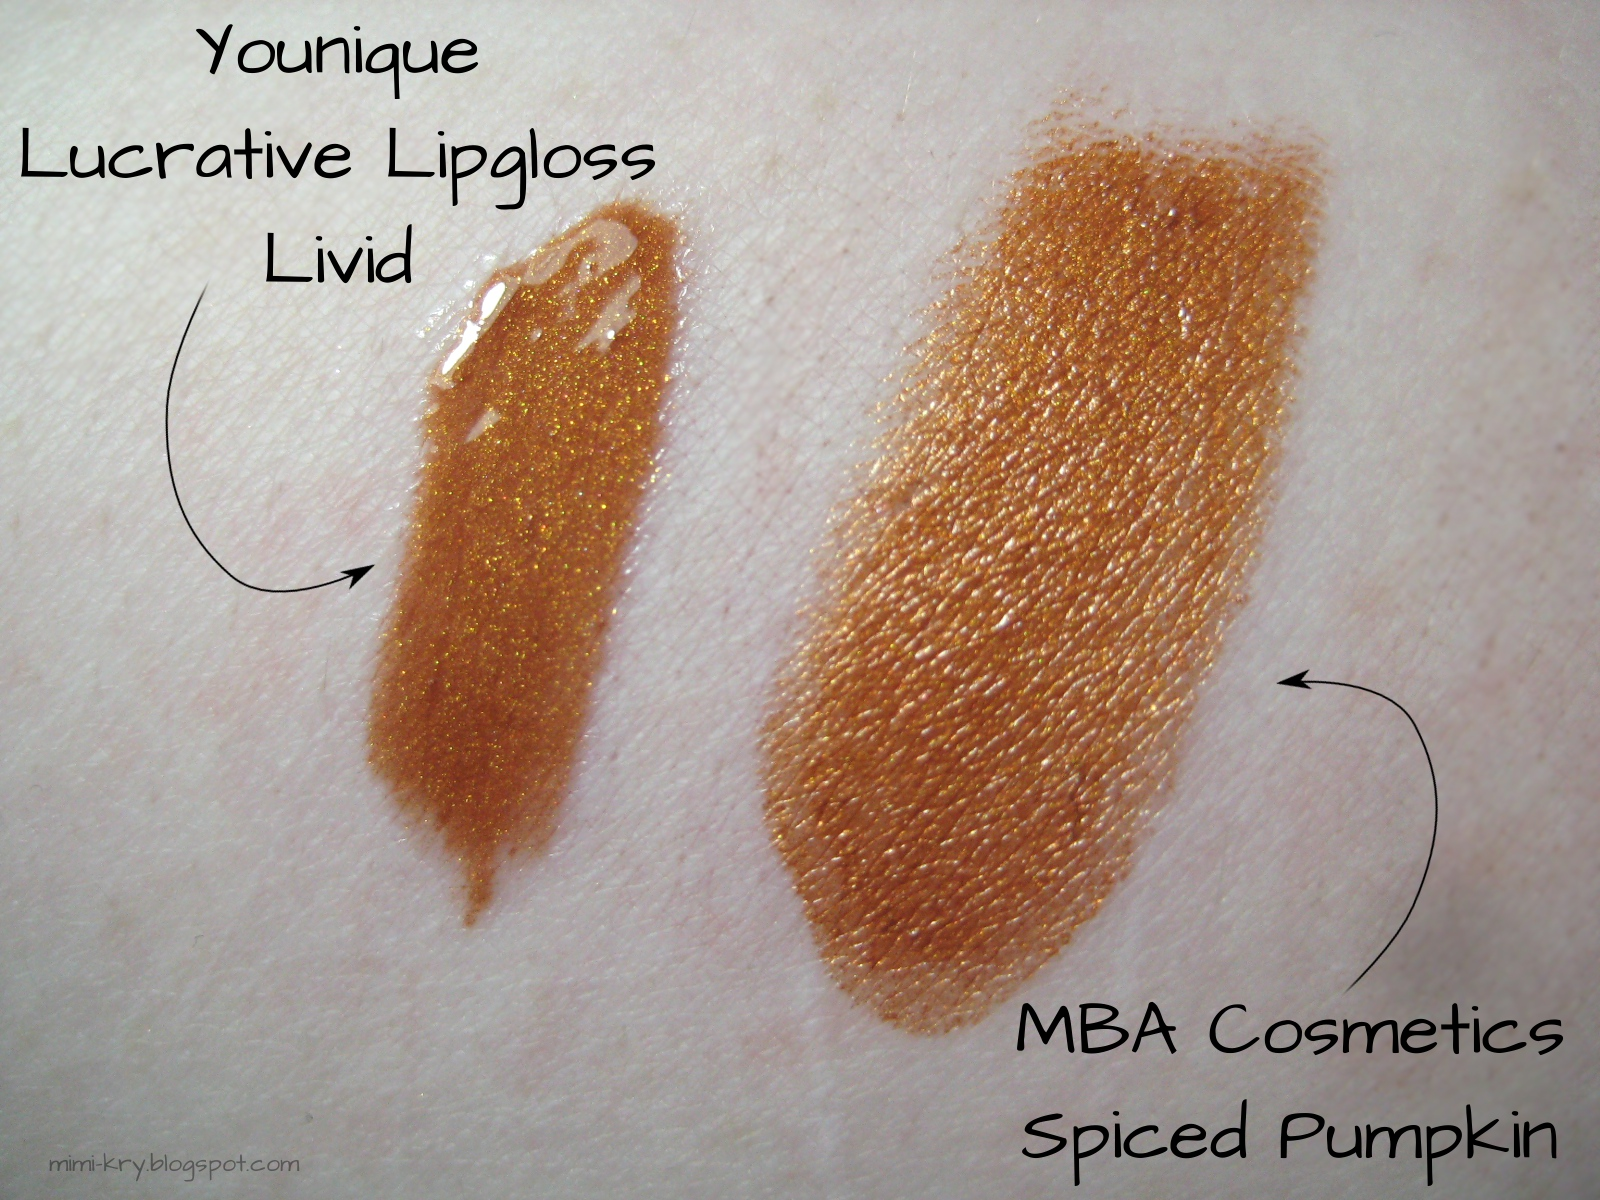 "Vergleich Younique Lucrative Lip Gloss ""Livid"" und MBA Cosmetics ""Spiced Pumpkin"""